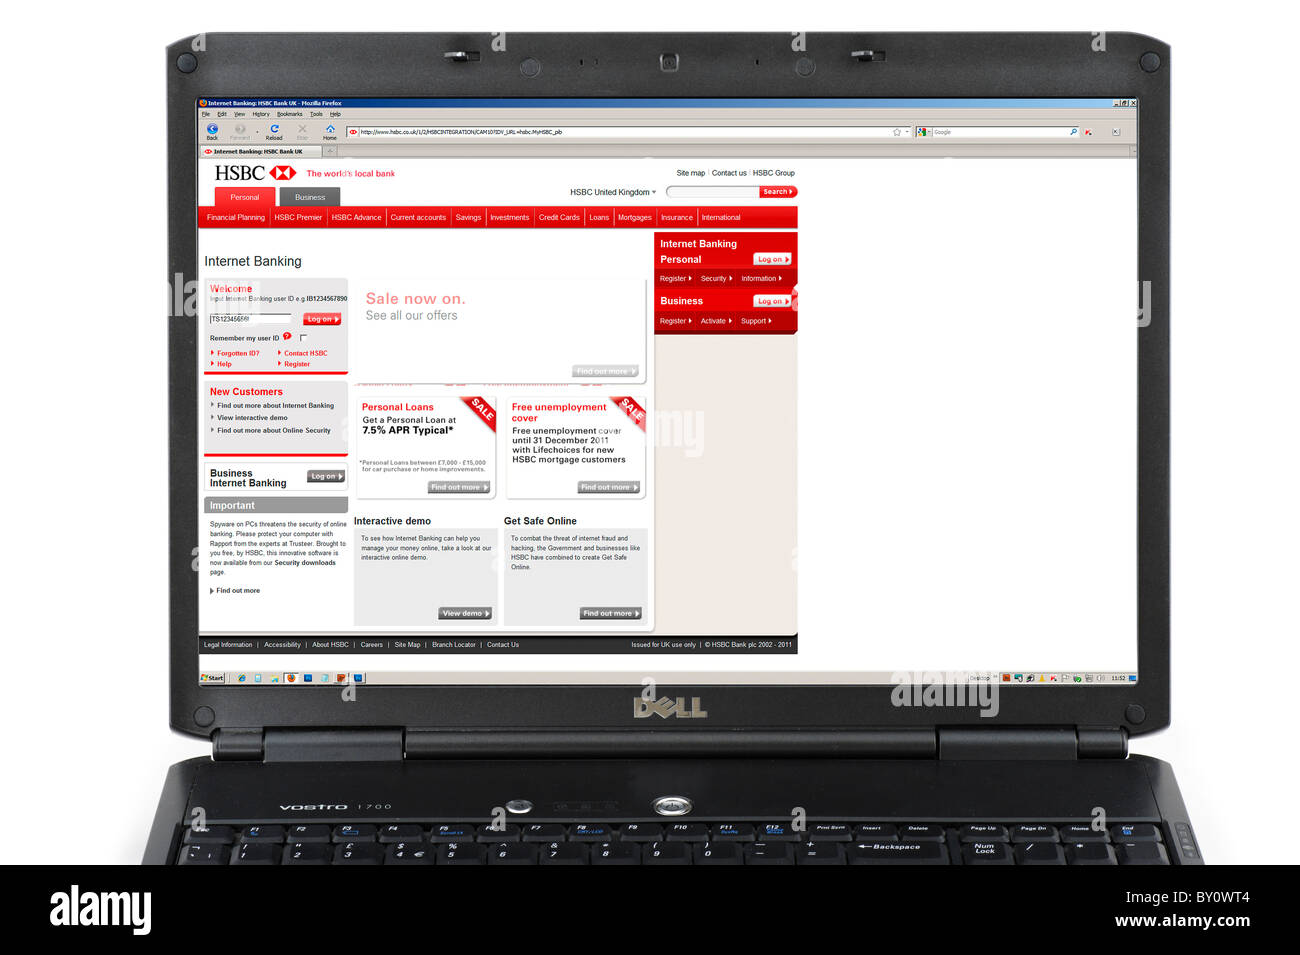 Logging on to hsbc online banking uk stock photo 33826356 alamy logging on to hsbc online banking uk reheart